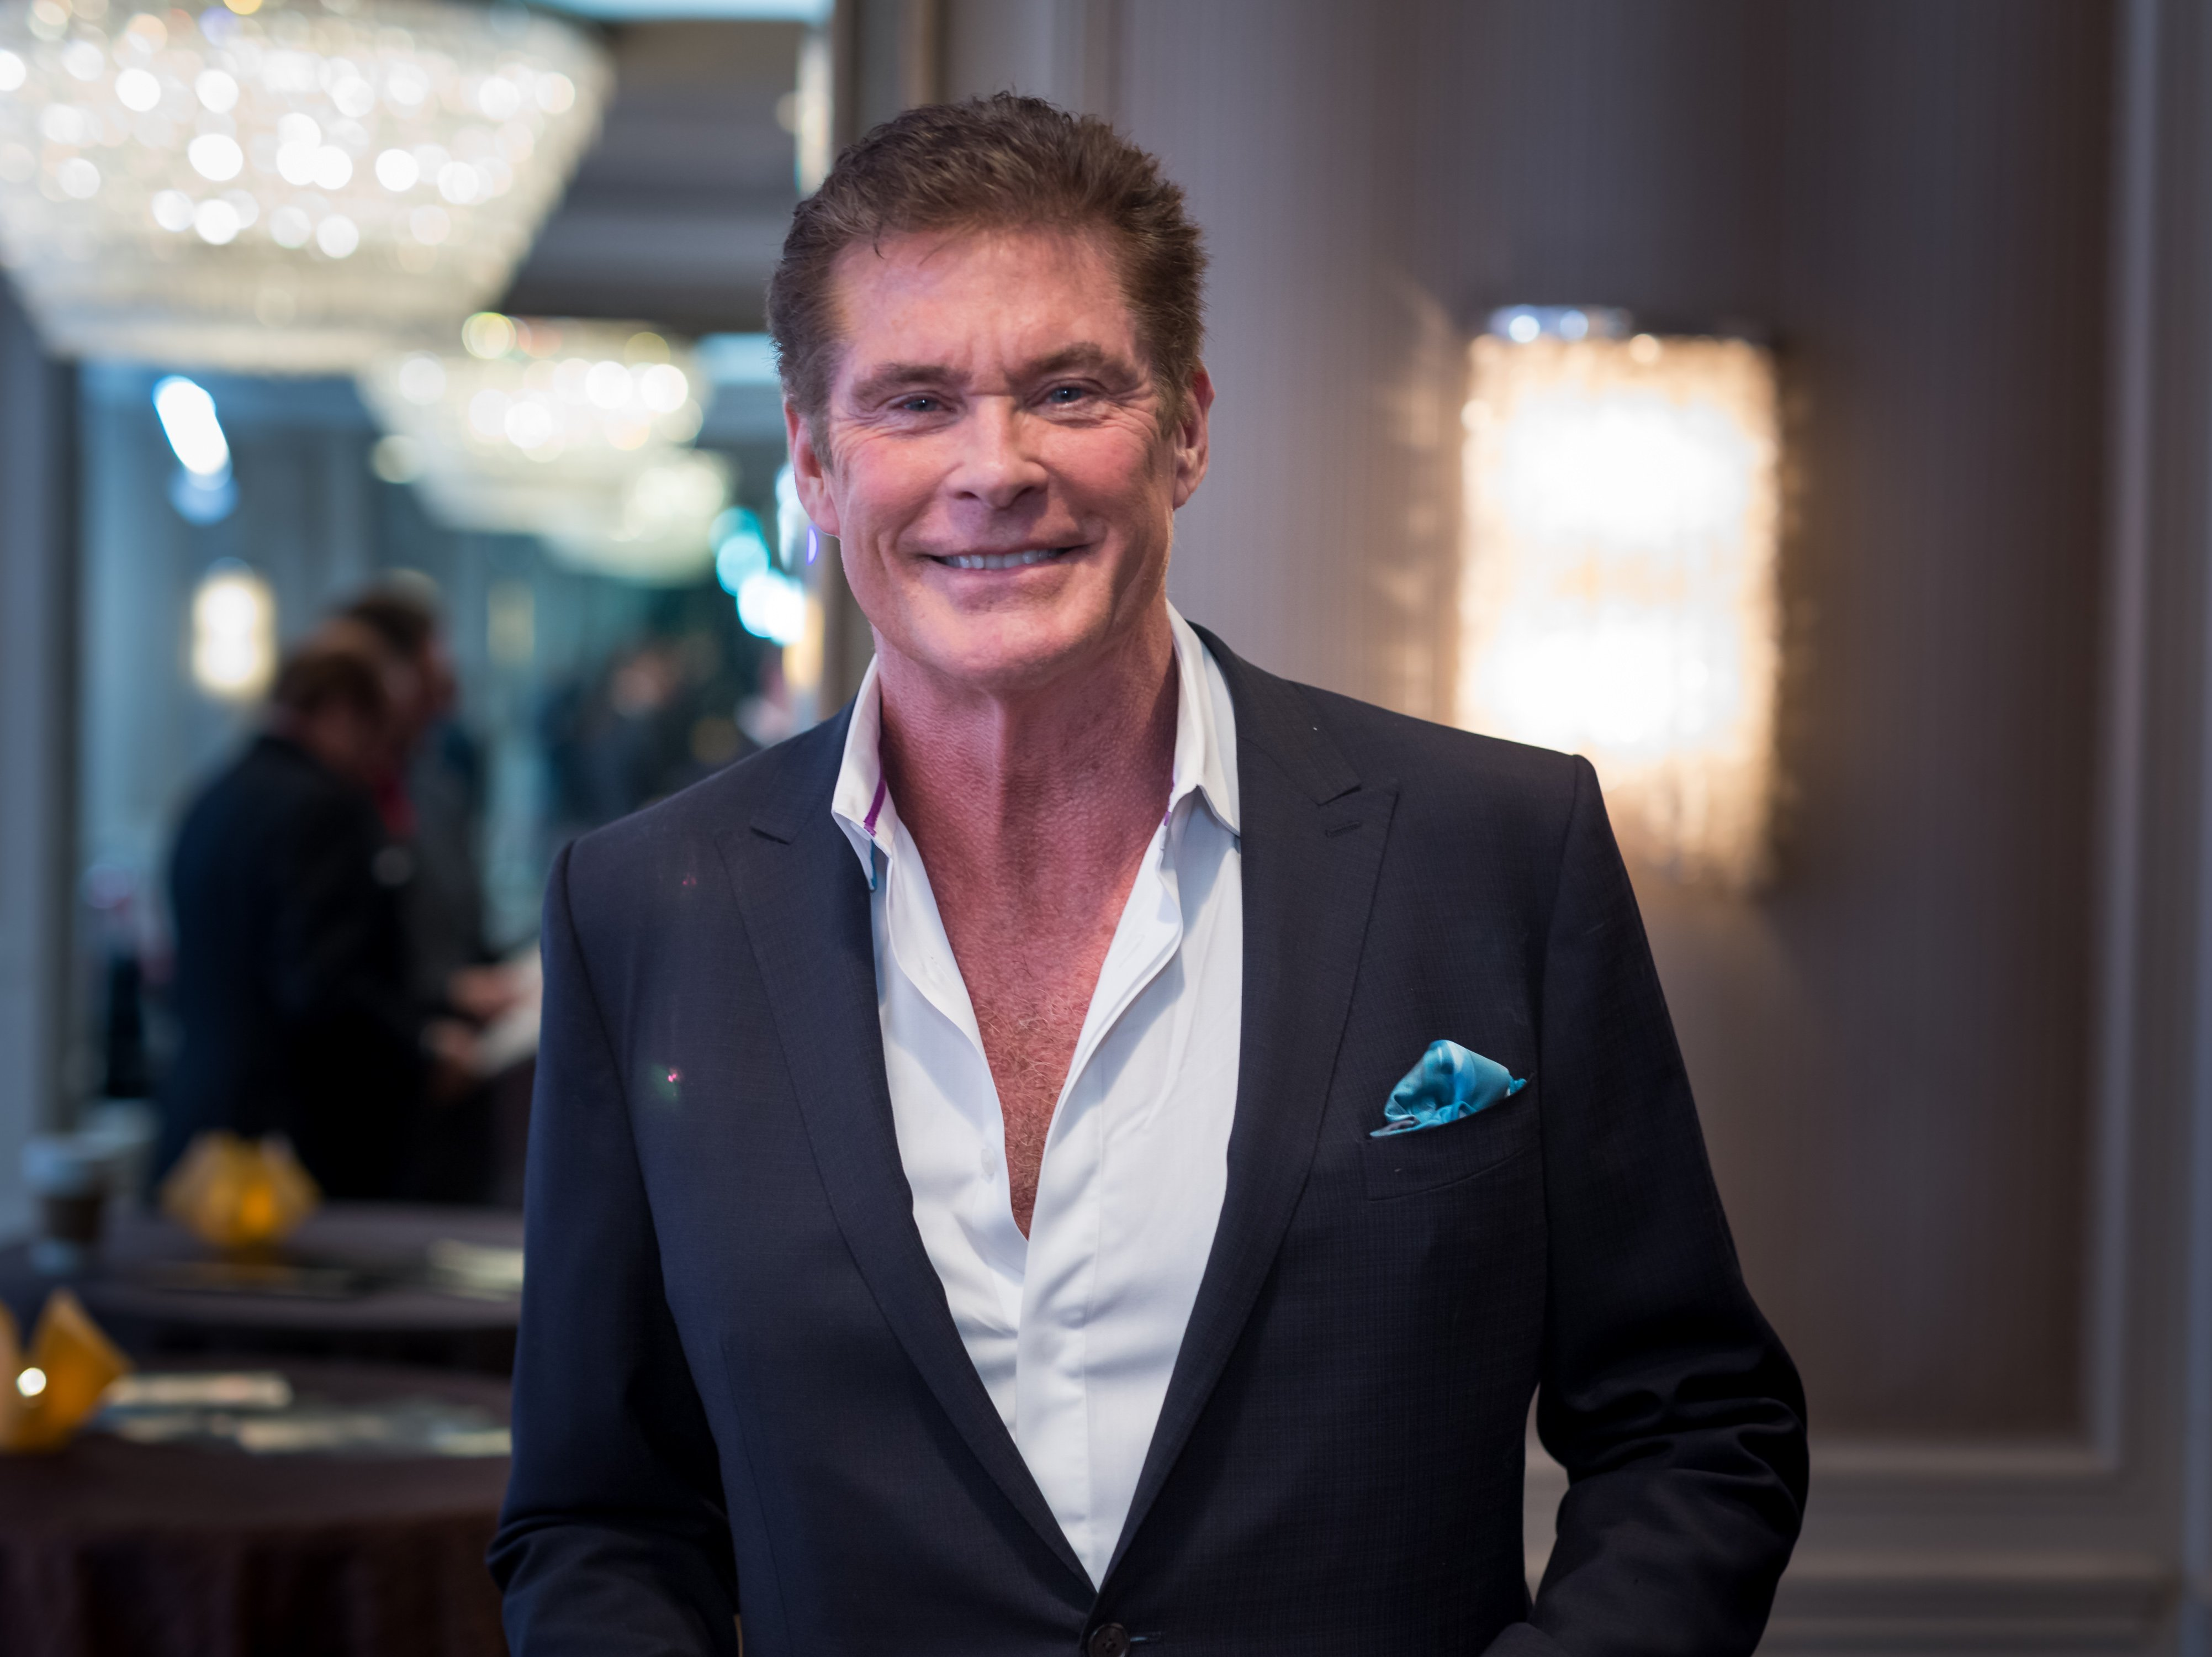 David Hasselhoff. I Image: Getty Images.